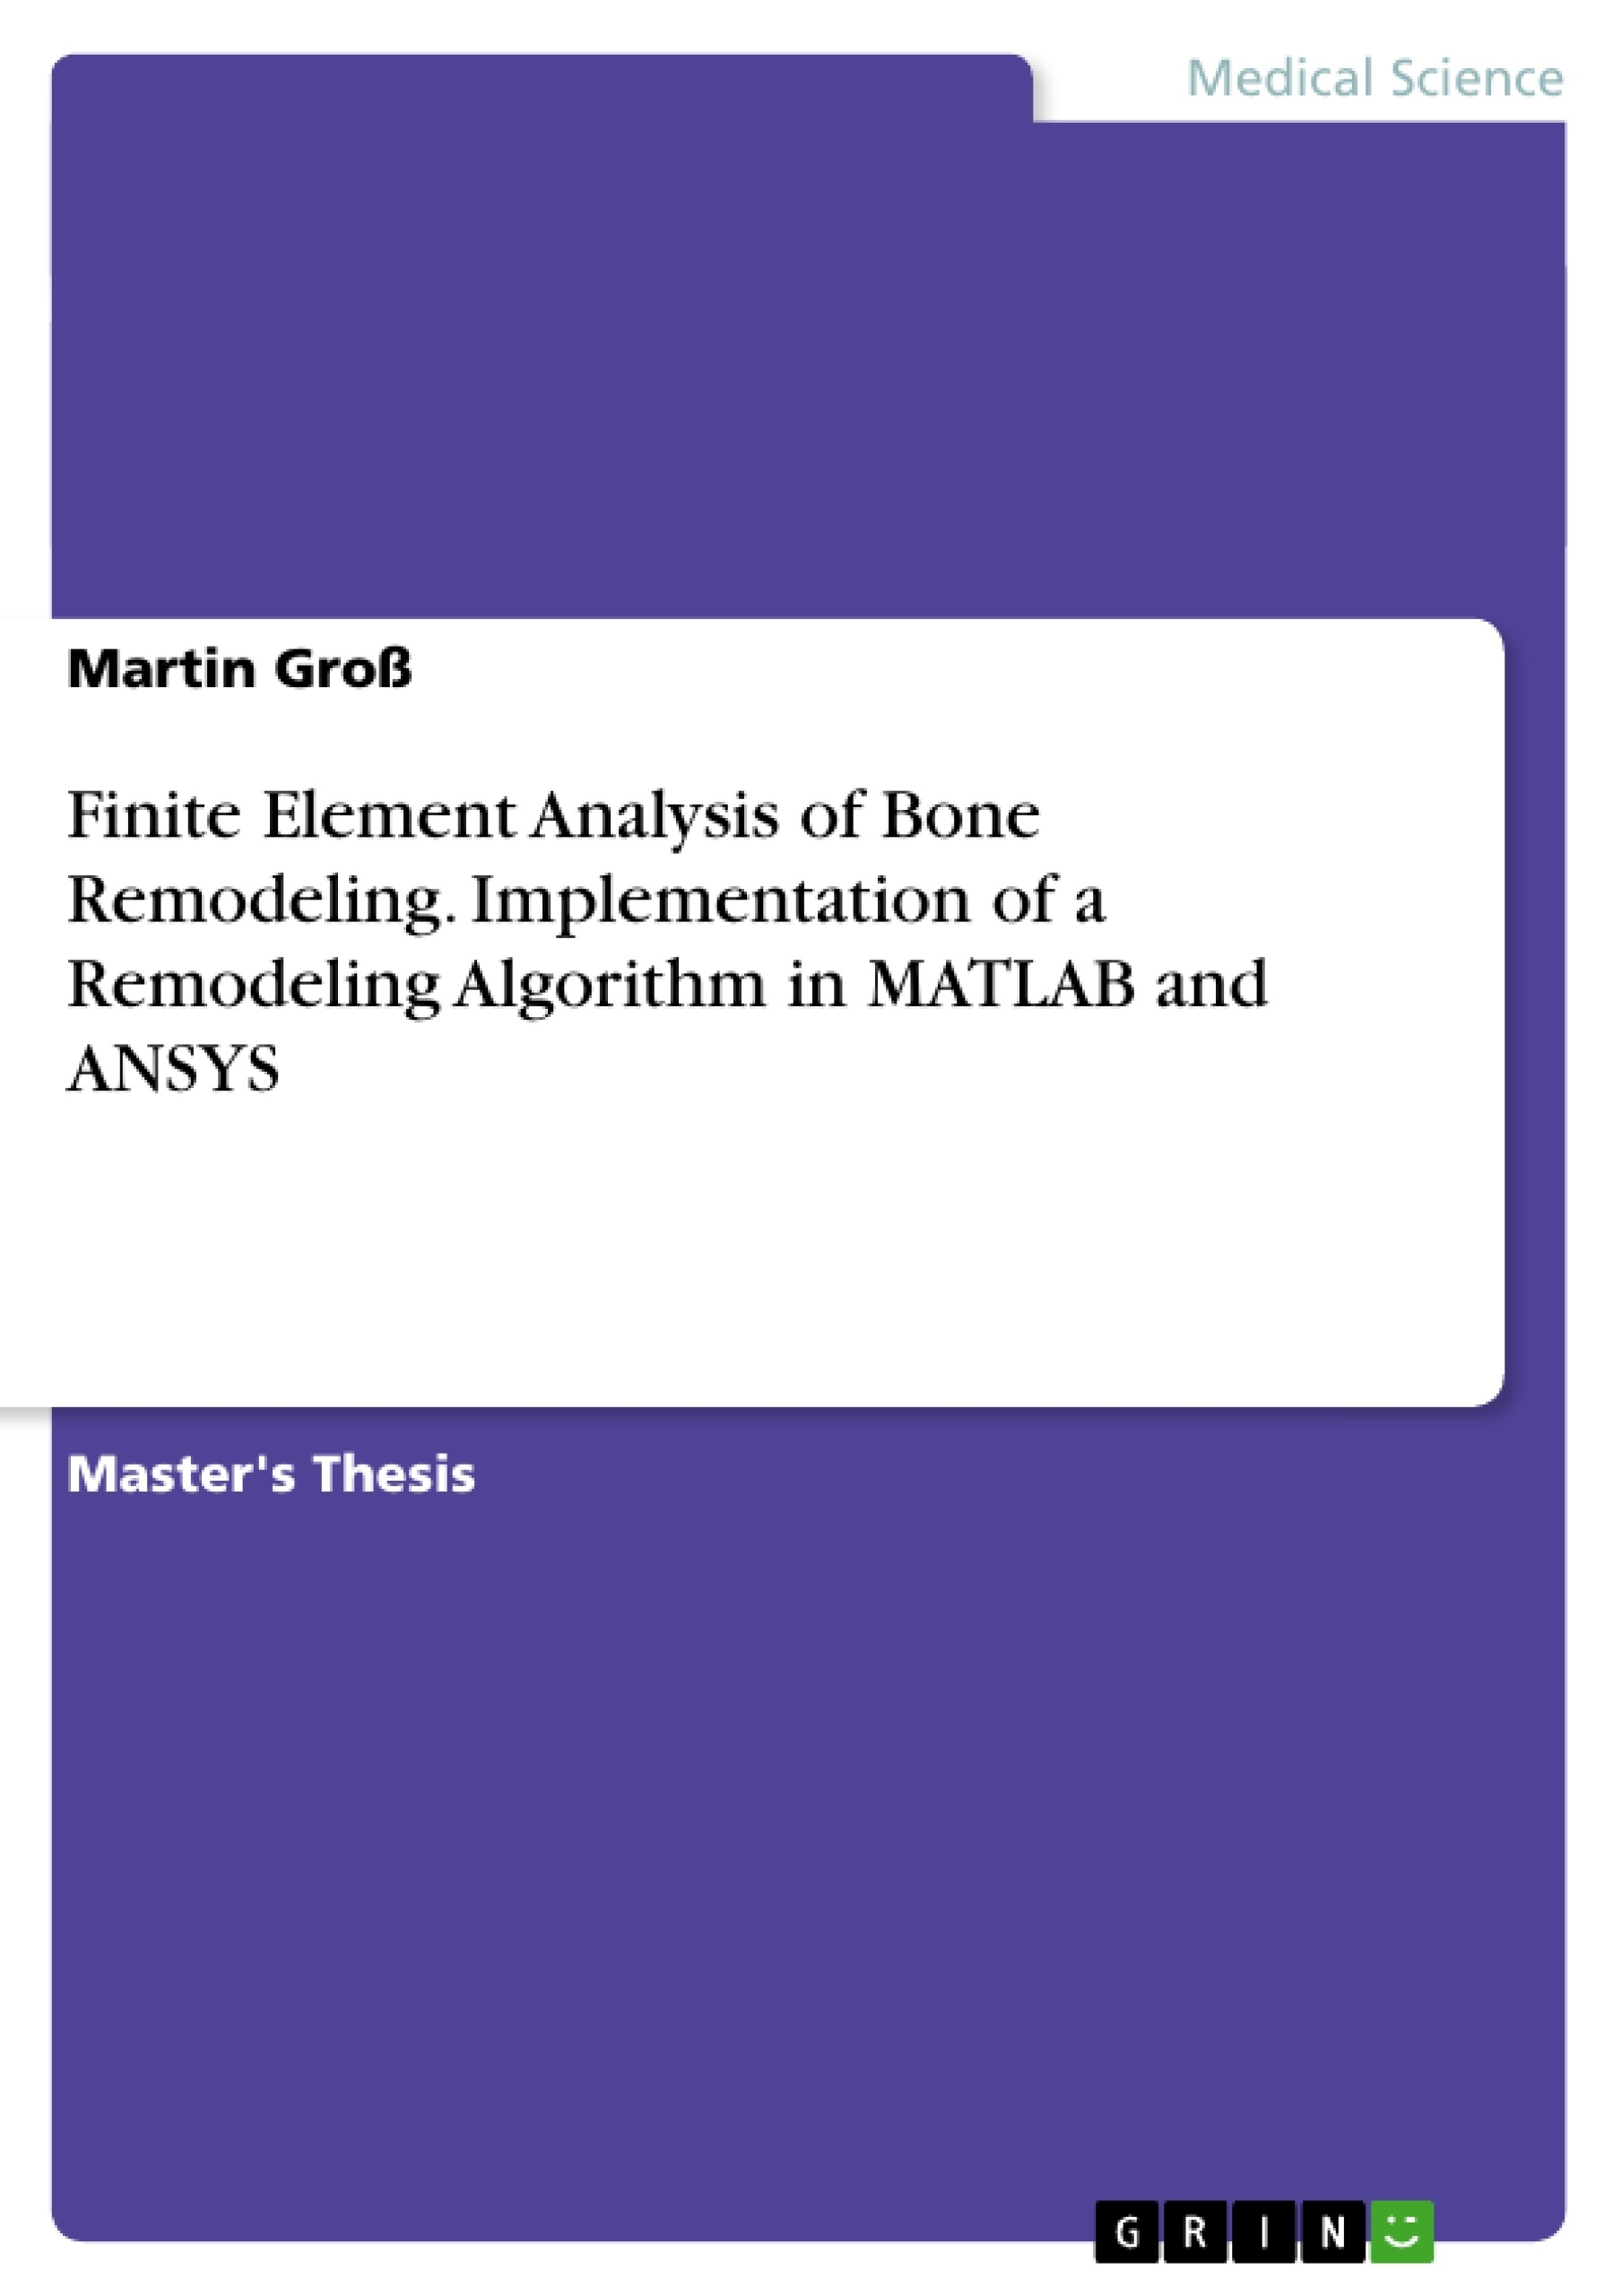 GRIN - Finite Element Analysis of Bone Remodeling  Implementation of a  Remodeling Algorithm in MATLAB and ANSYS